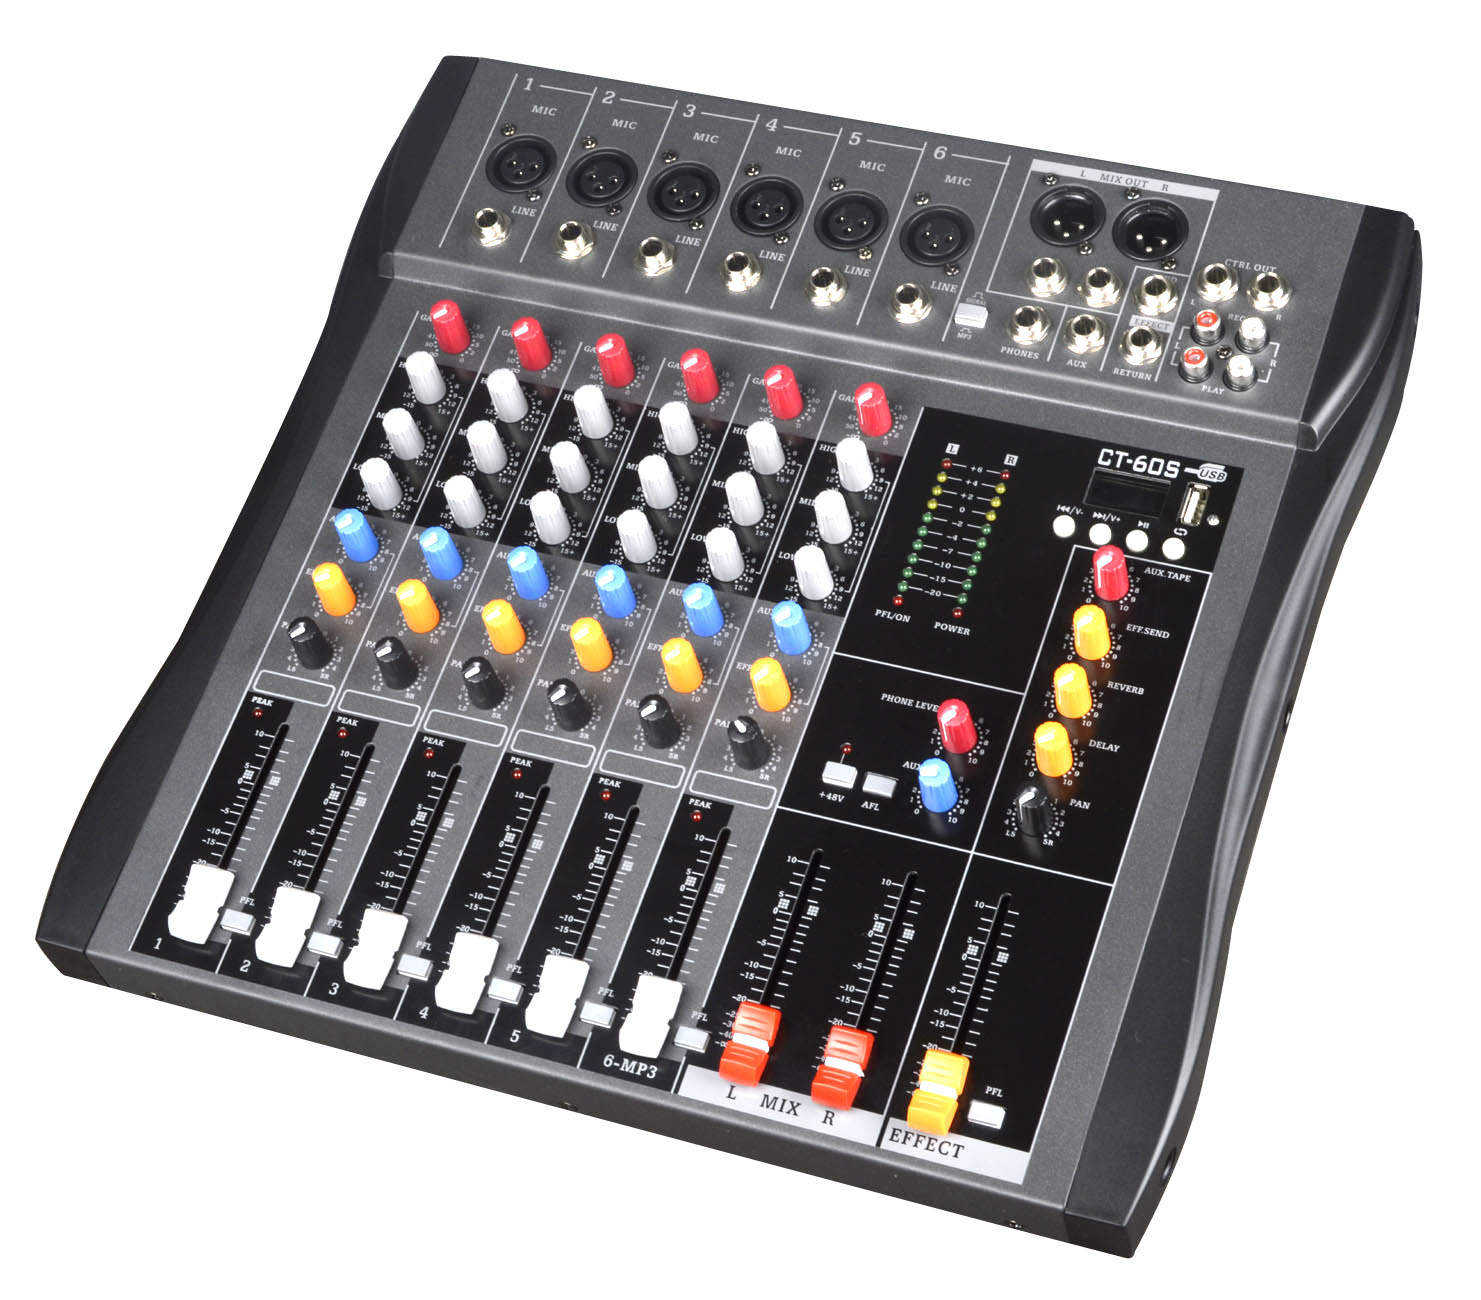 Professional bluetooth mixer with reverb effect home stage performance conference 4-way, 7-way, 6-way, 8-way tuning table enlarge